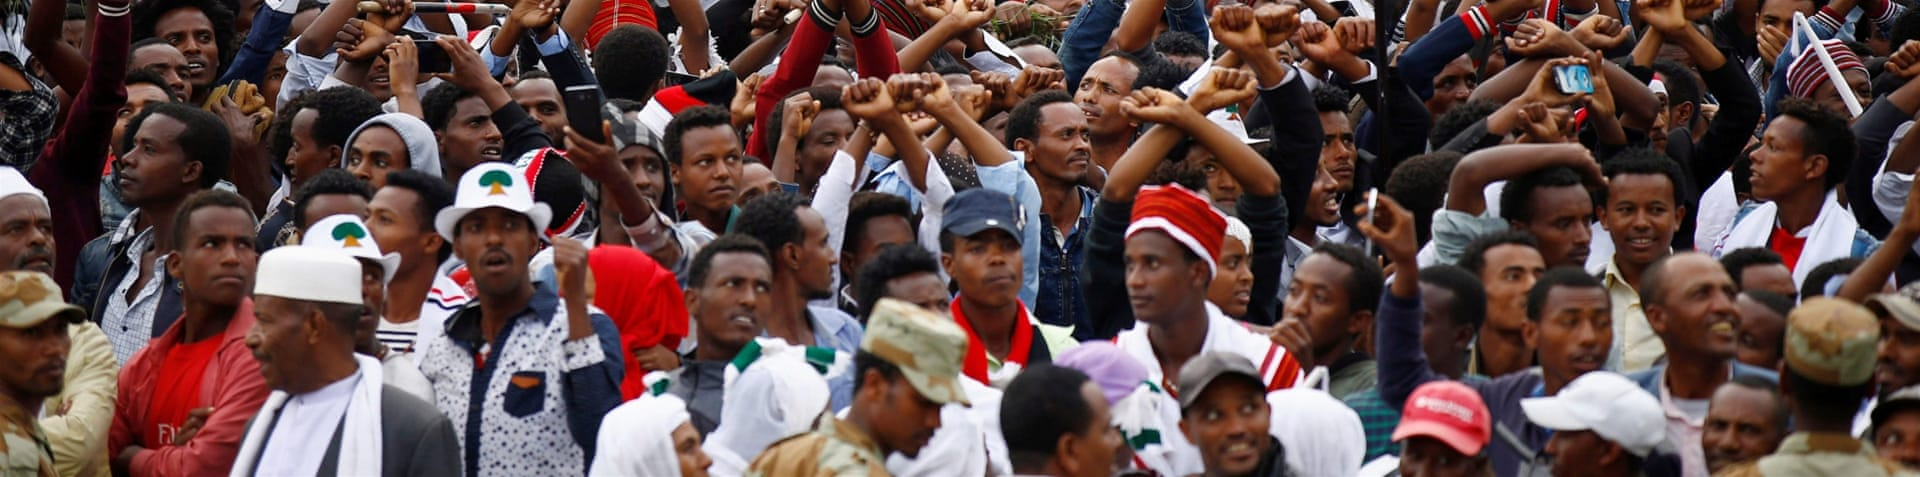 Merera is the chairman of the Oromo Federalist Congress [Barry Malone/Reuters]